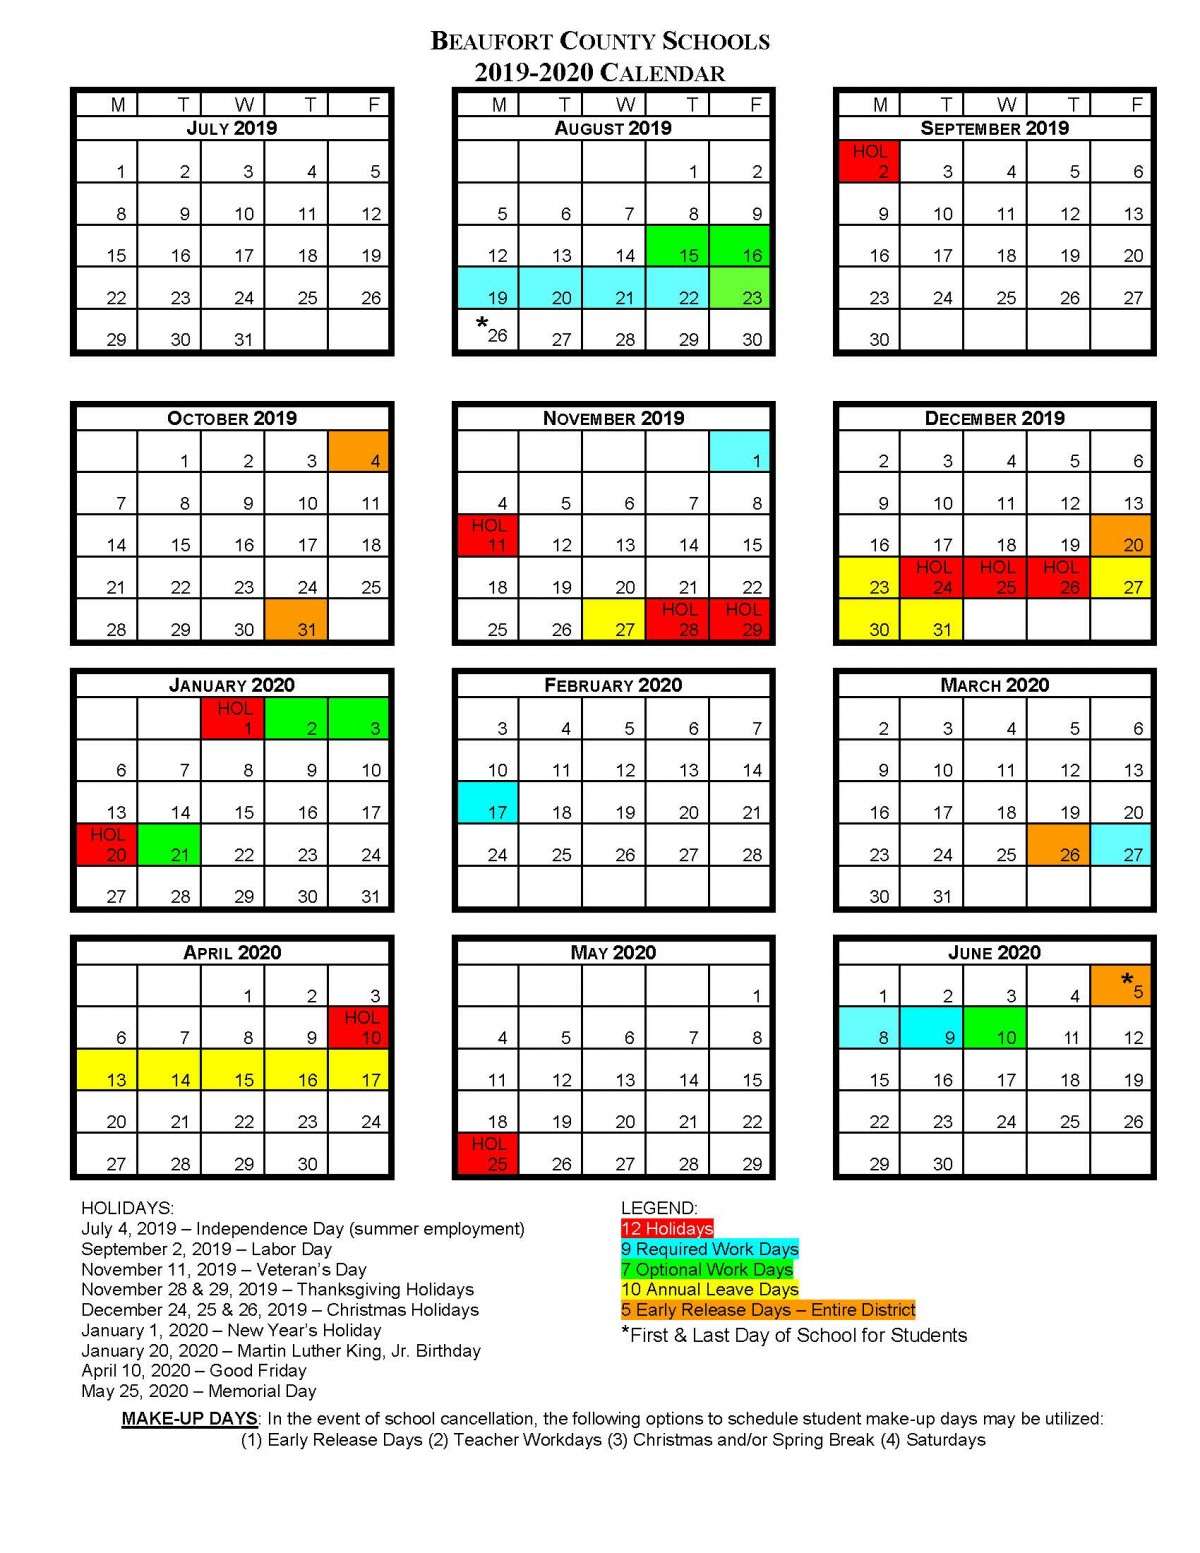 Bcs School Calendars | Beaufort County Schools with regard to Six Nations School Caldendar 2019-2020